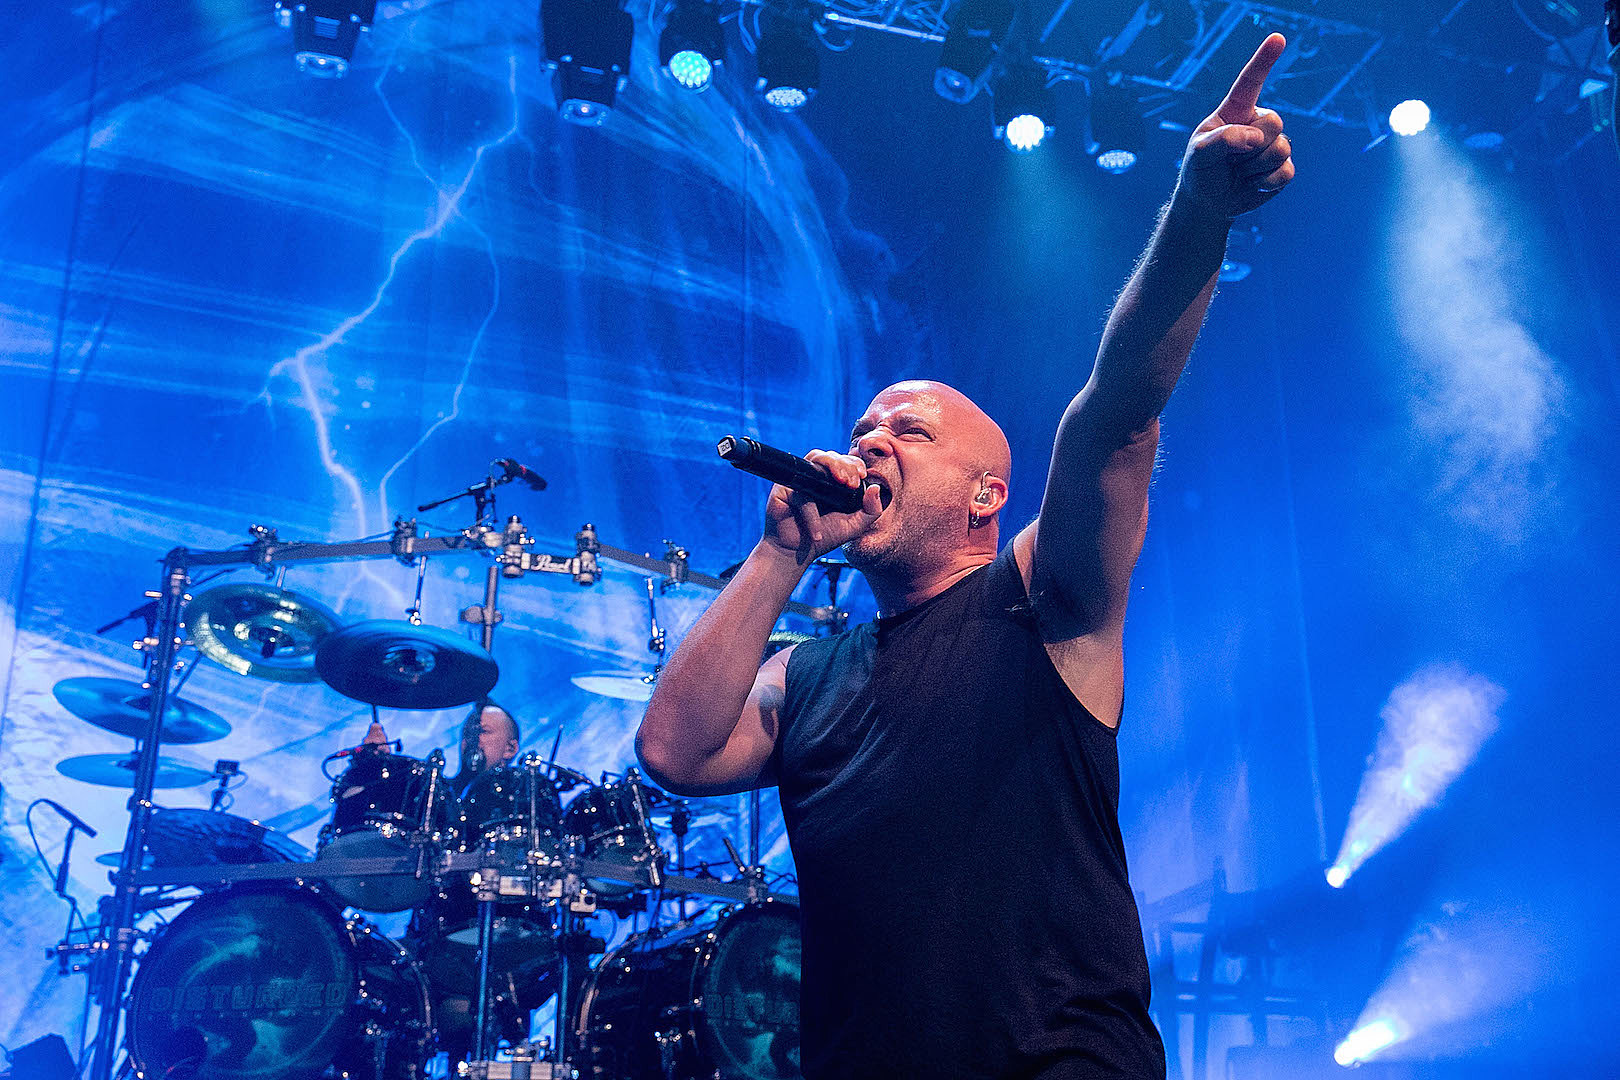 David Draiman Explains Why He Removed His Signature Chin Piercings